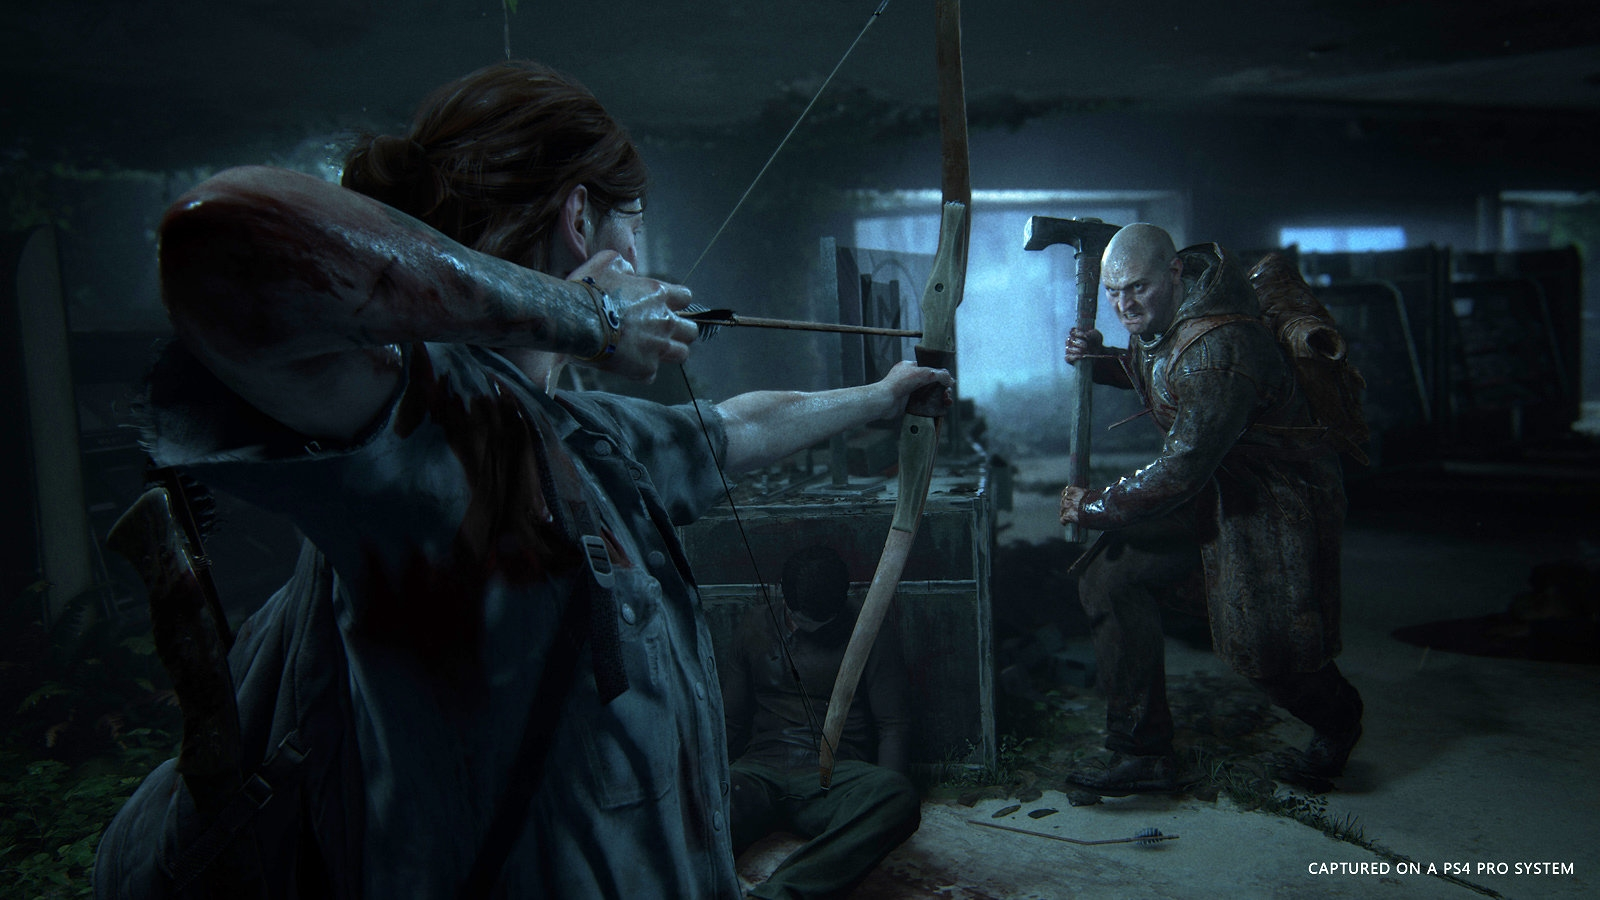 More 'The Last of Us Part II' details will emerge on September 24th | DeviceDaily.com